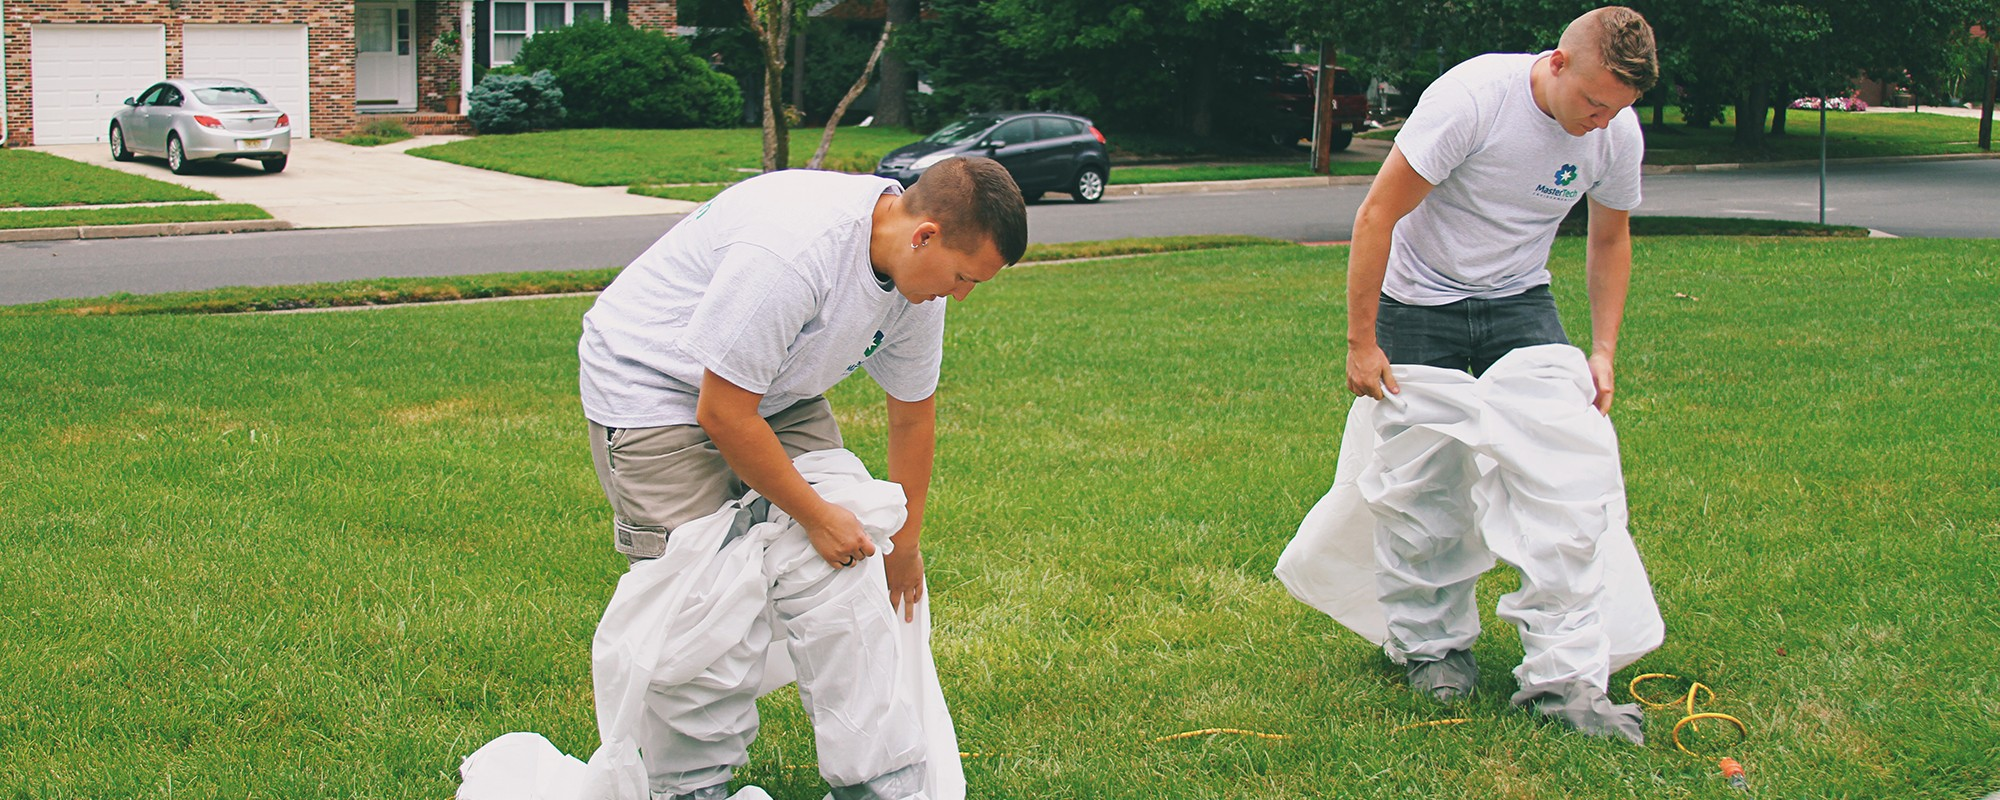 body decomposition cleanup company nj